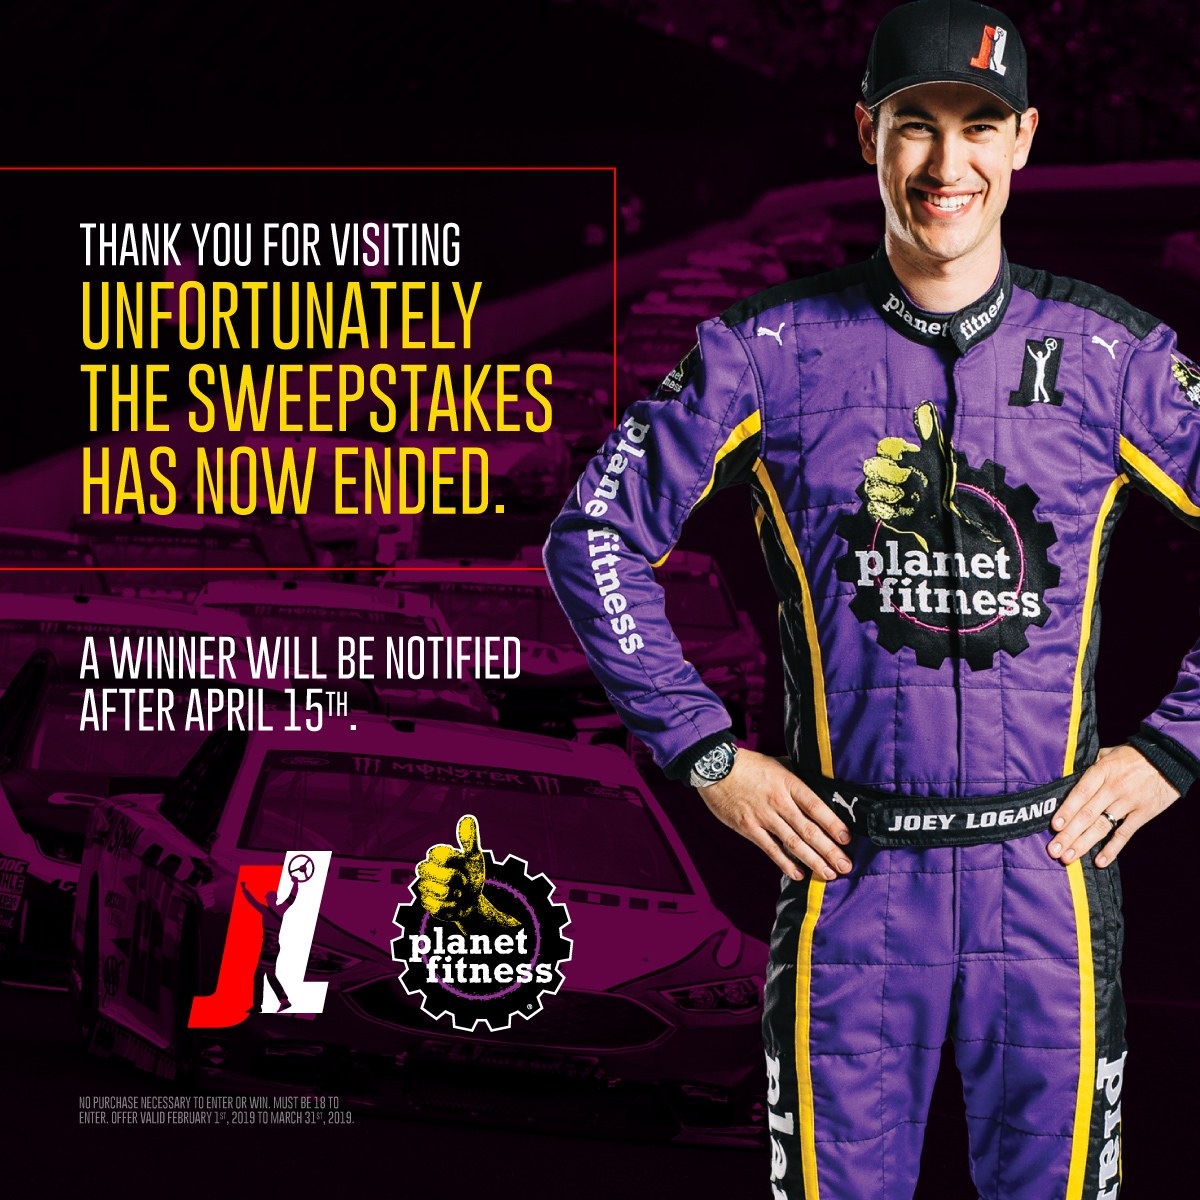 Champion Driver Joey Logano Planet Fitness Sweepstakes